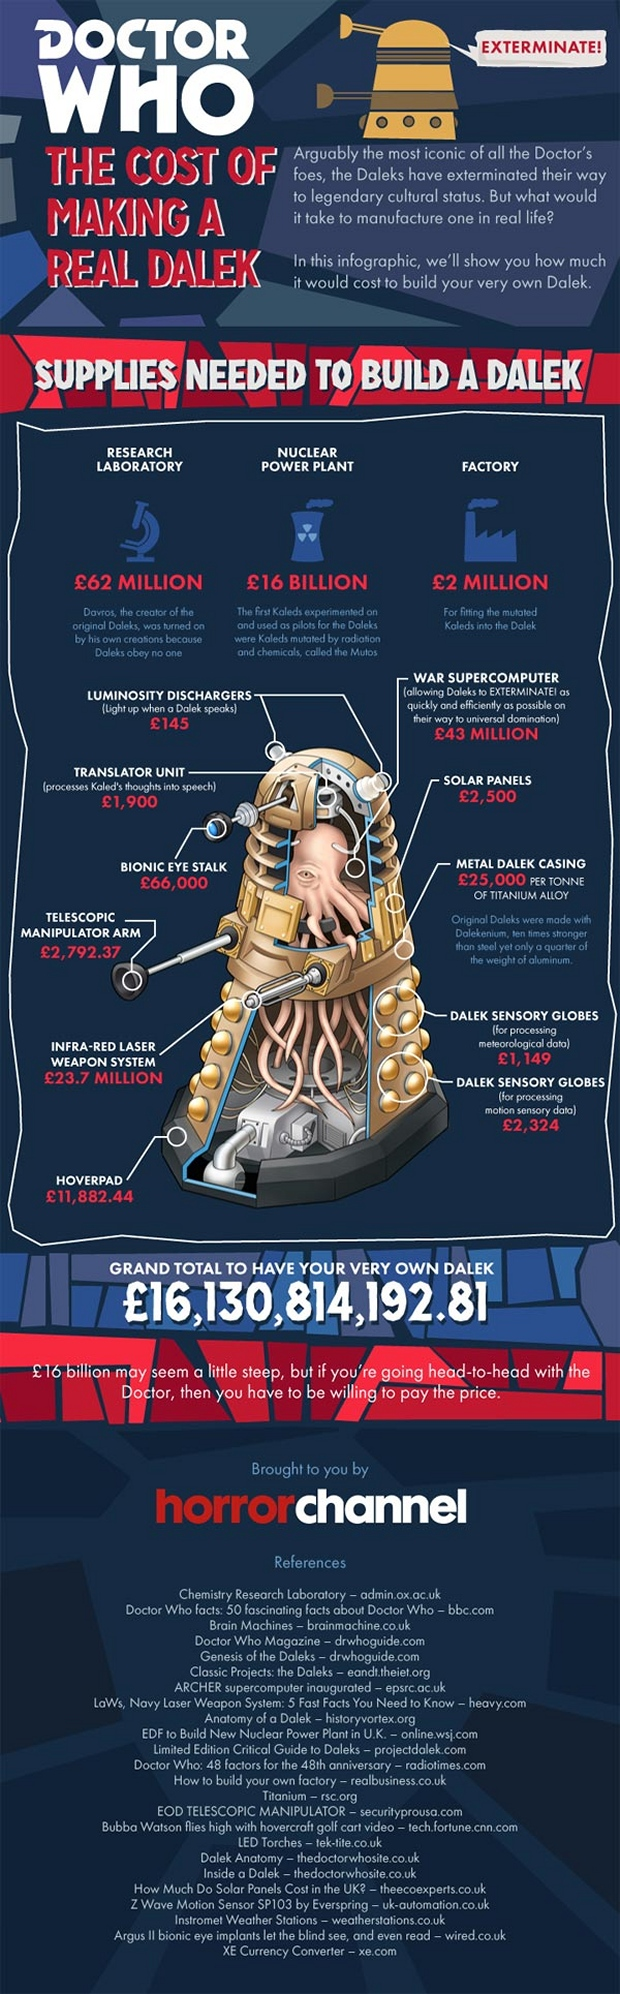 Infographic: The Cost of Making a Real Dalek